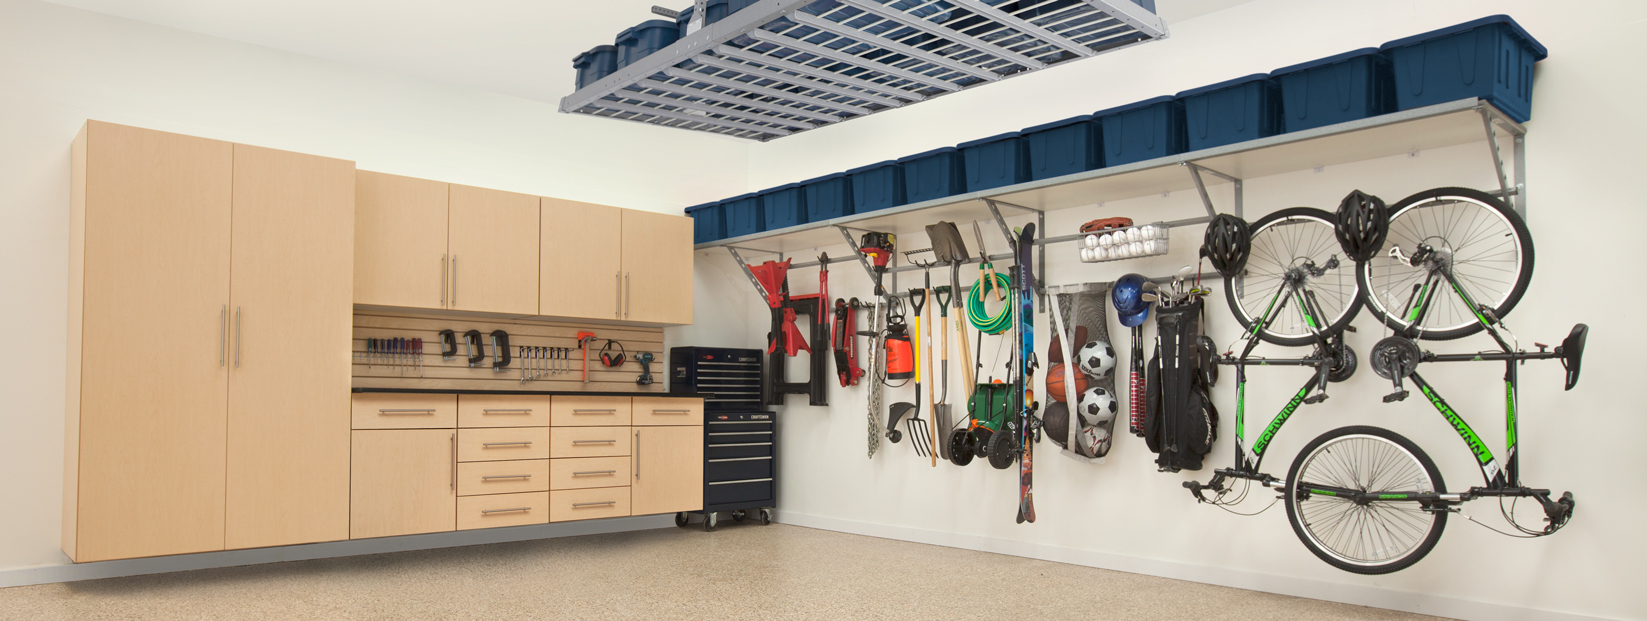 Garage Storage Belle Fourche